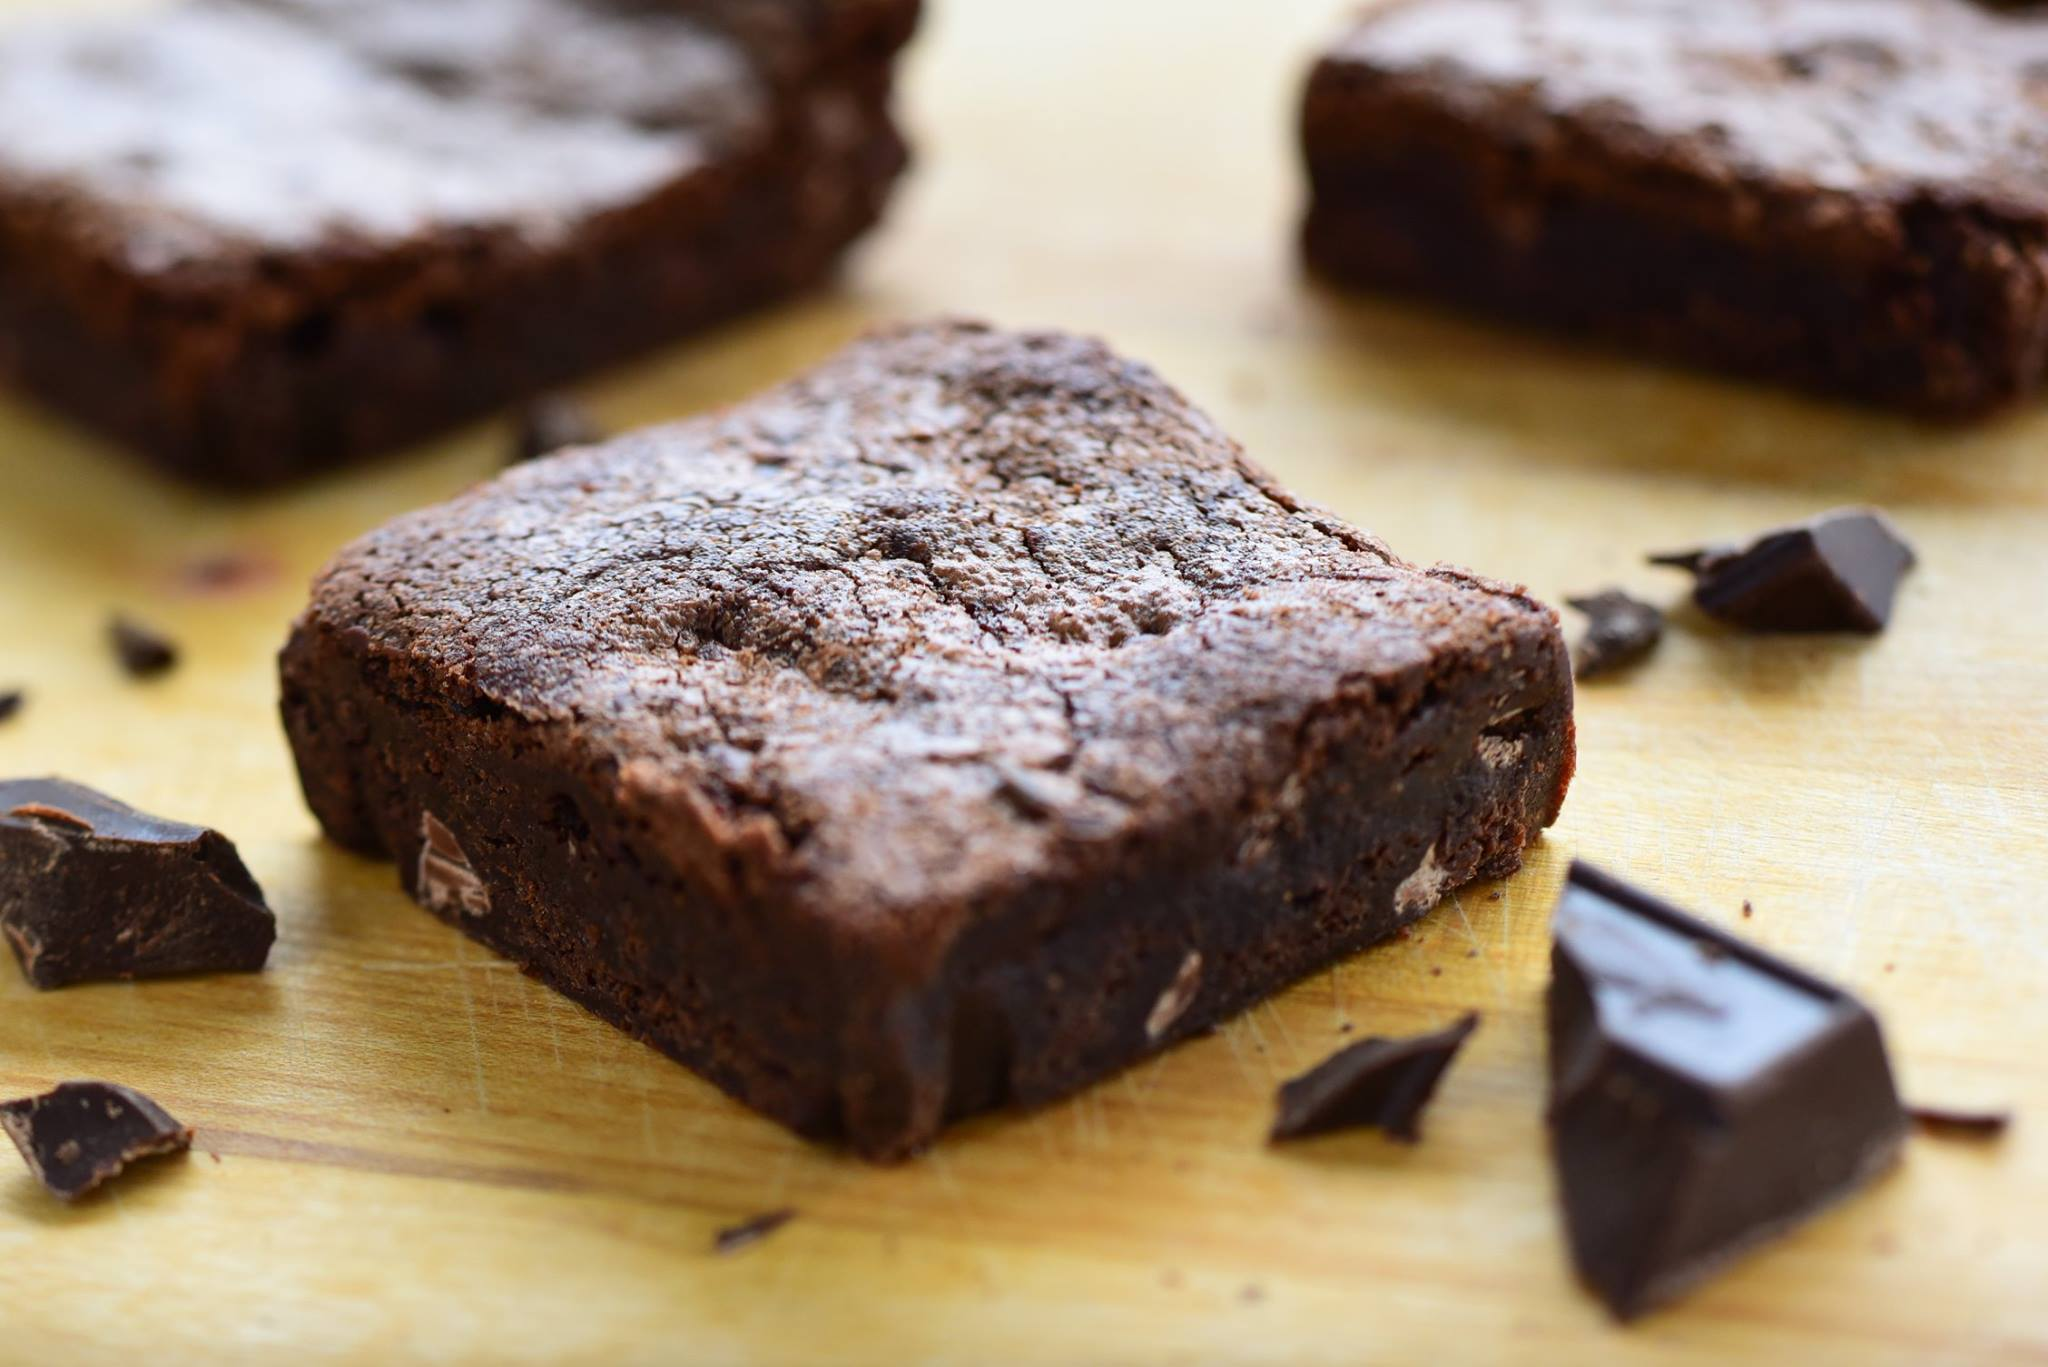 Fudge Brownie By Marys (Triple Strength, Indica) 140mg & 300mg by Cannabisy - Image © 2018 Cannabisy. All Rights Reserved.